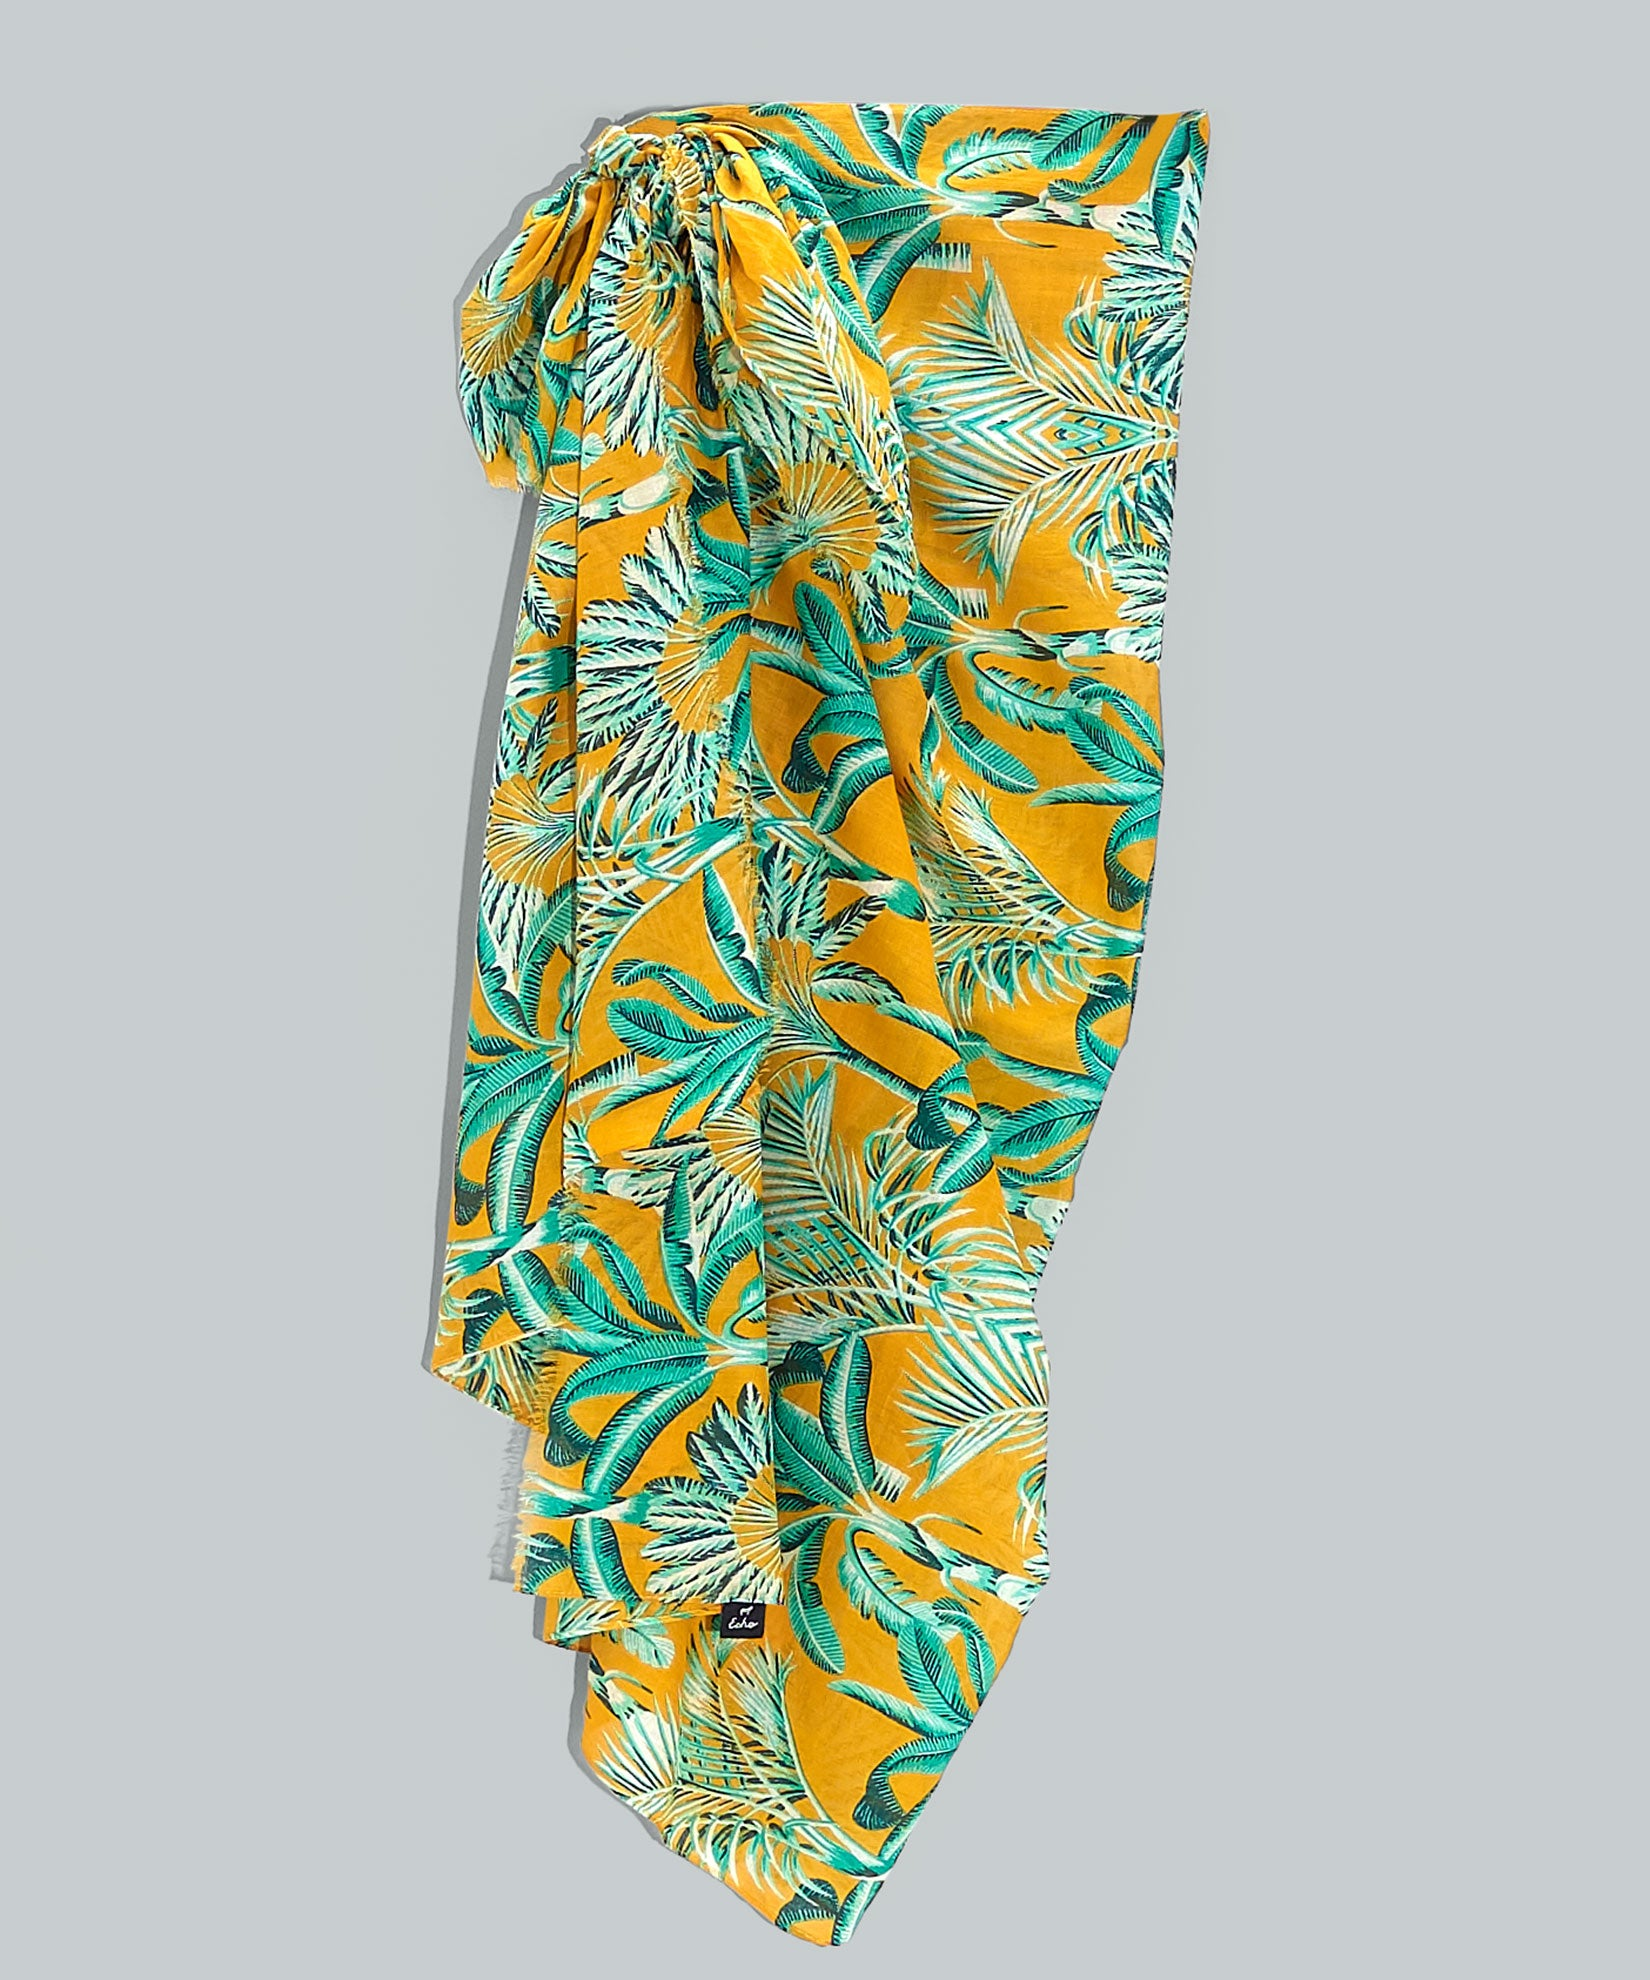 Zinnia - Palm Toile Pareo Wrap In-A-Bag